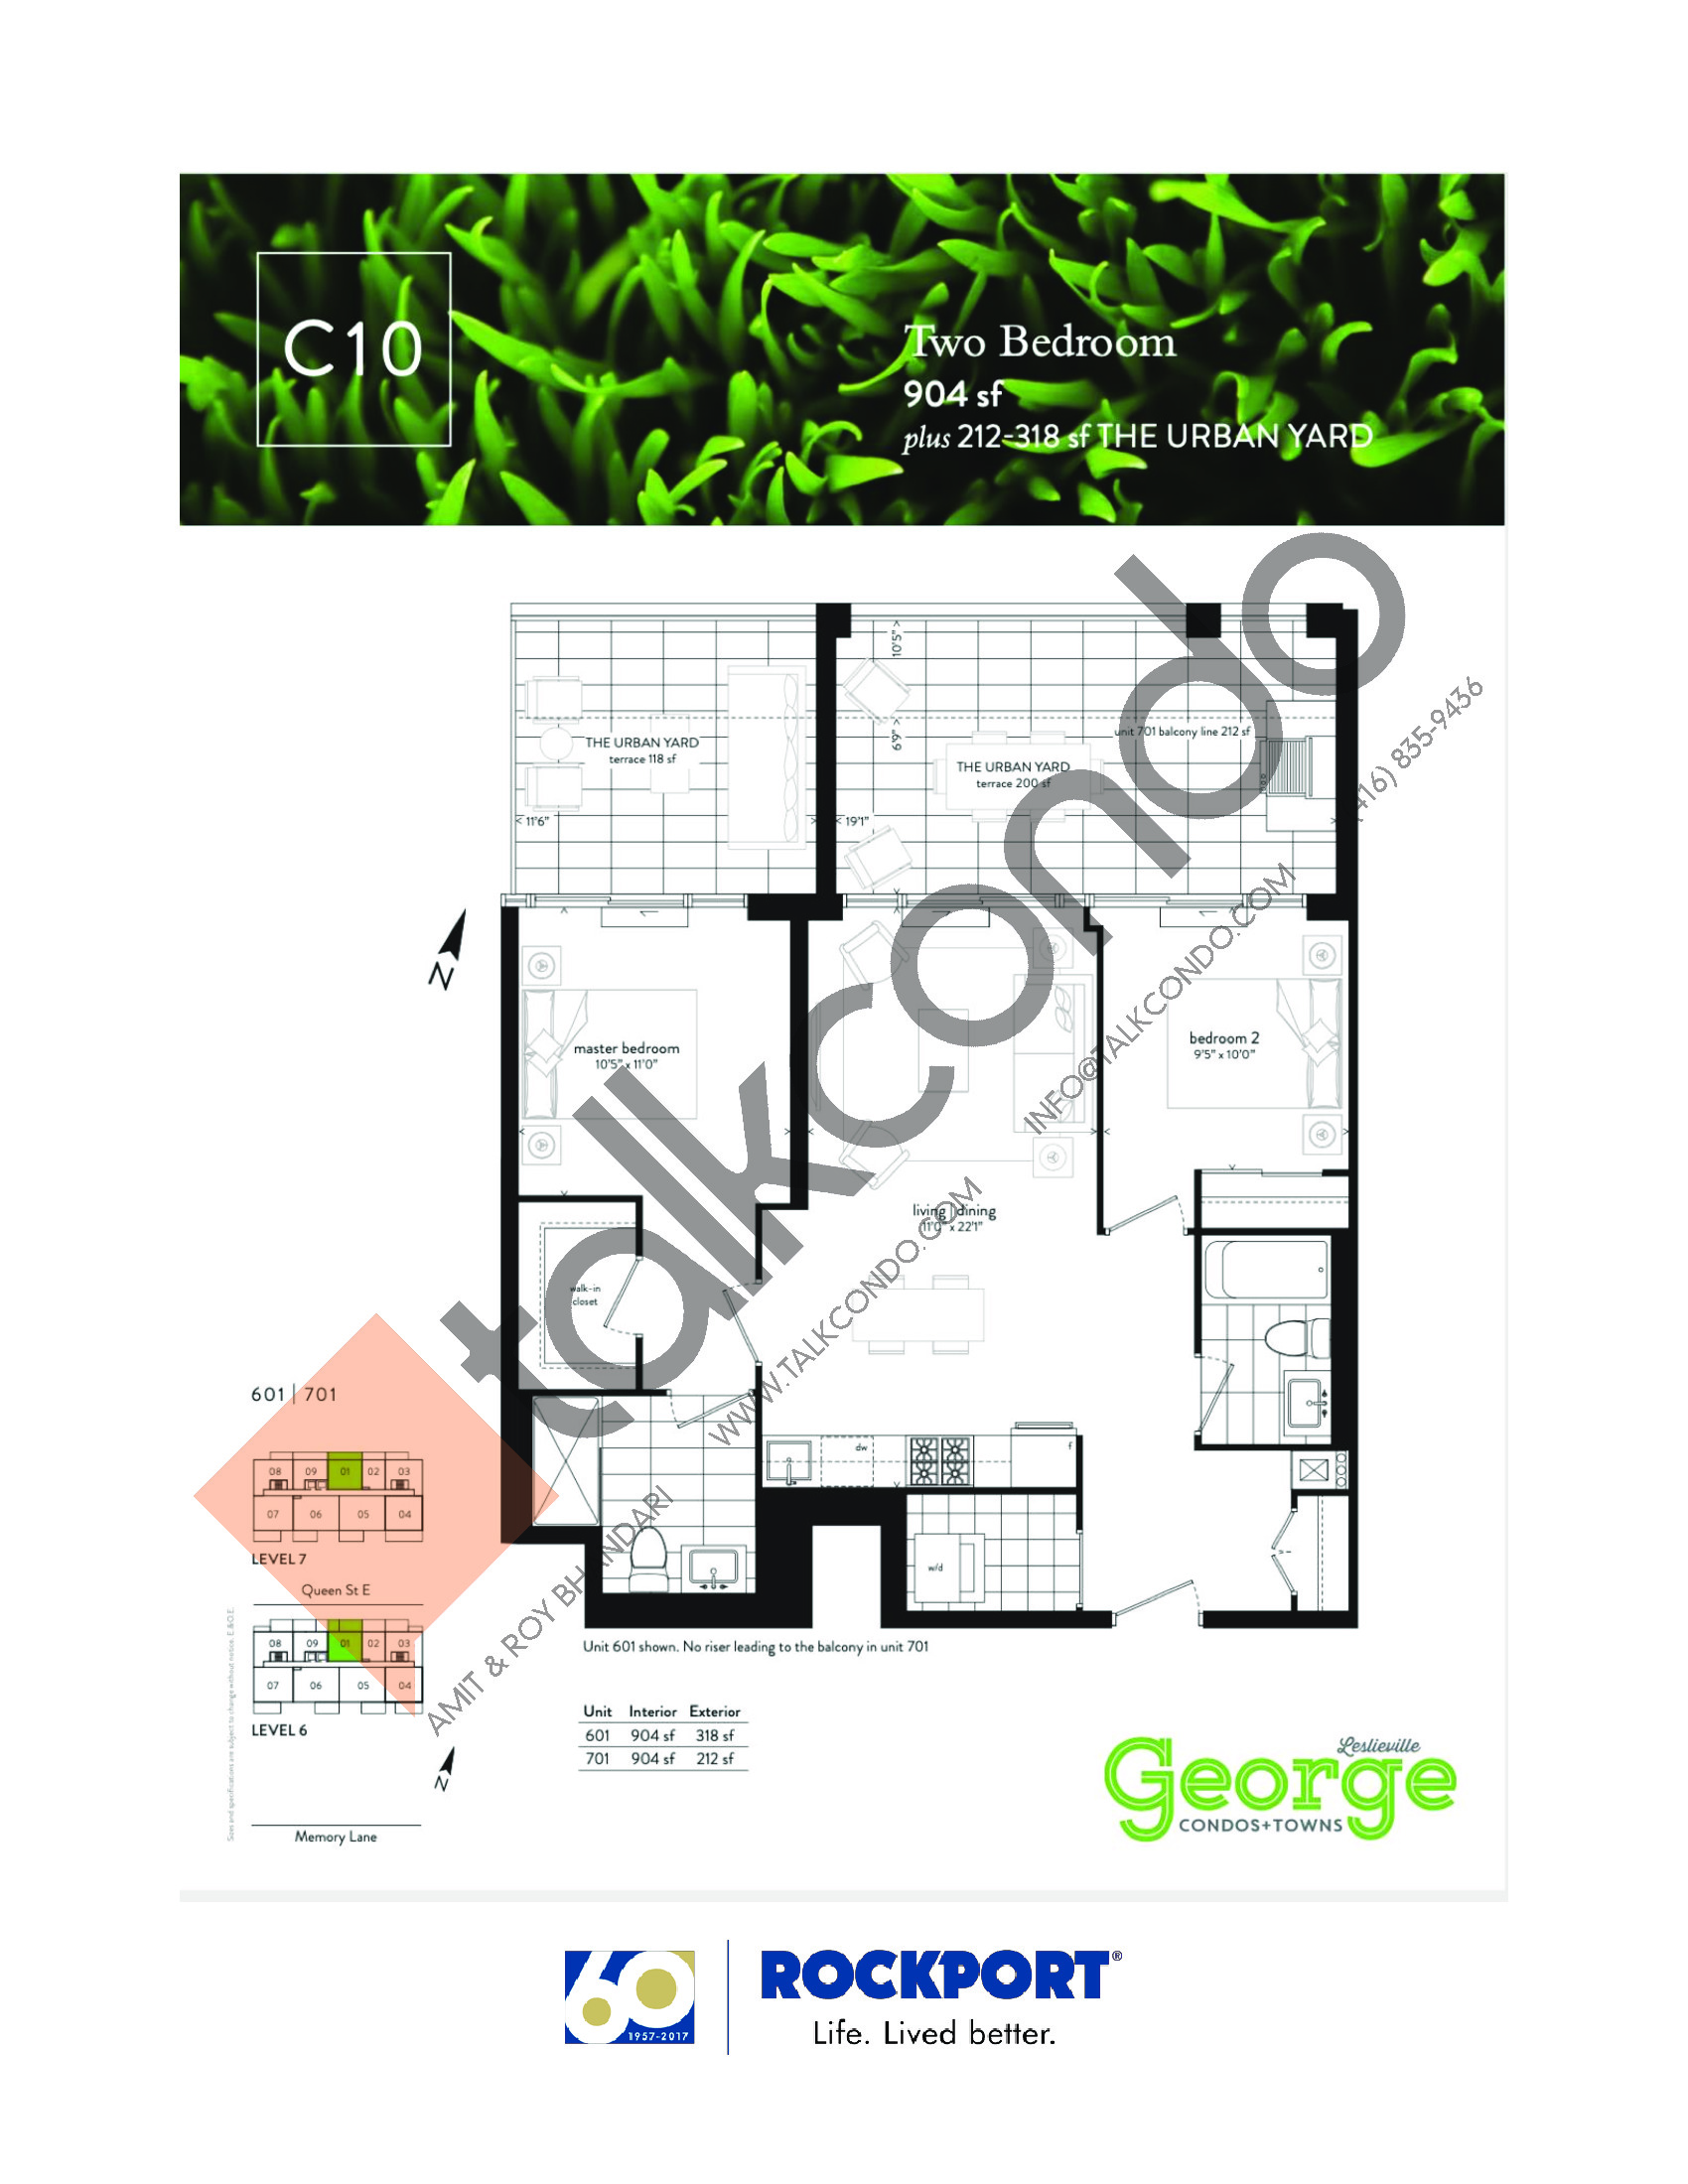 C10 Floor Plan at George Condos & Towns - 904 sq.ft